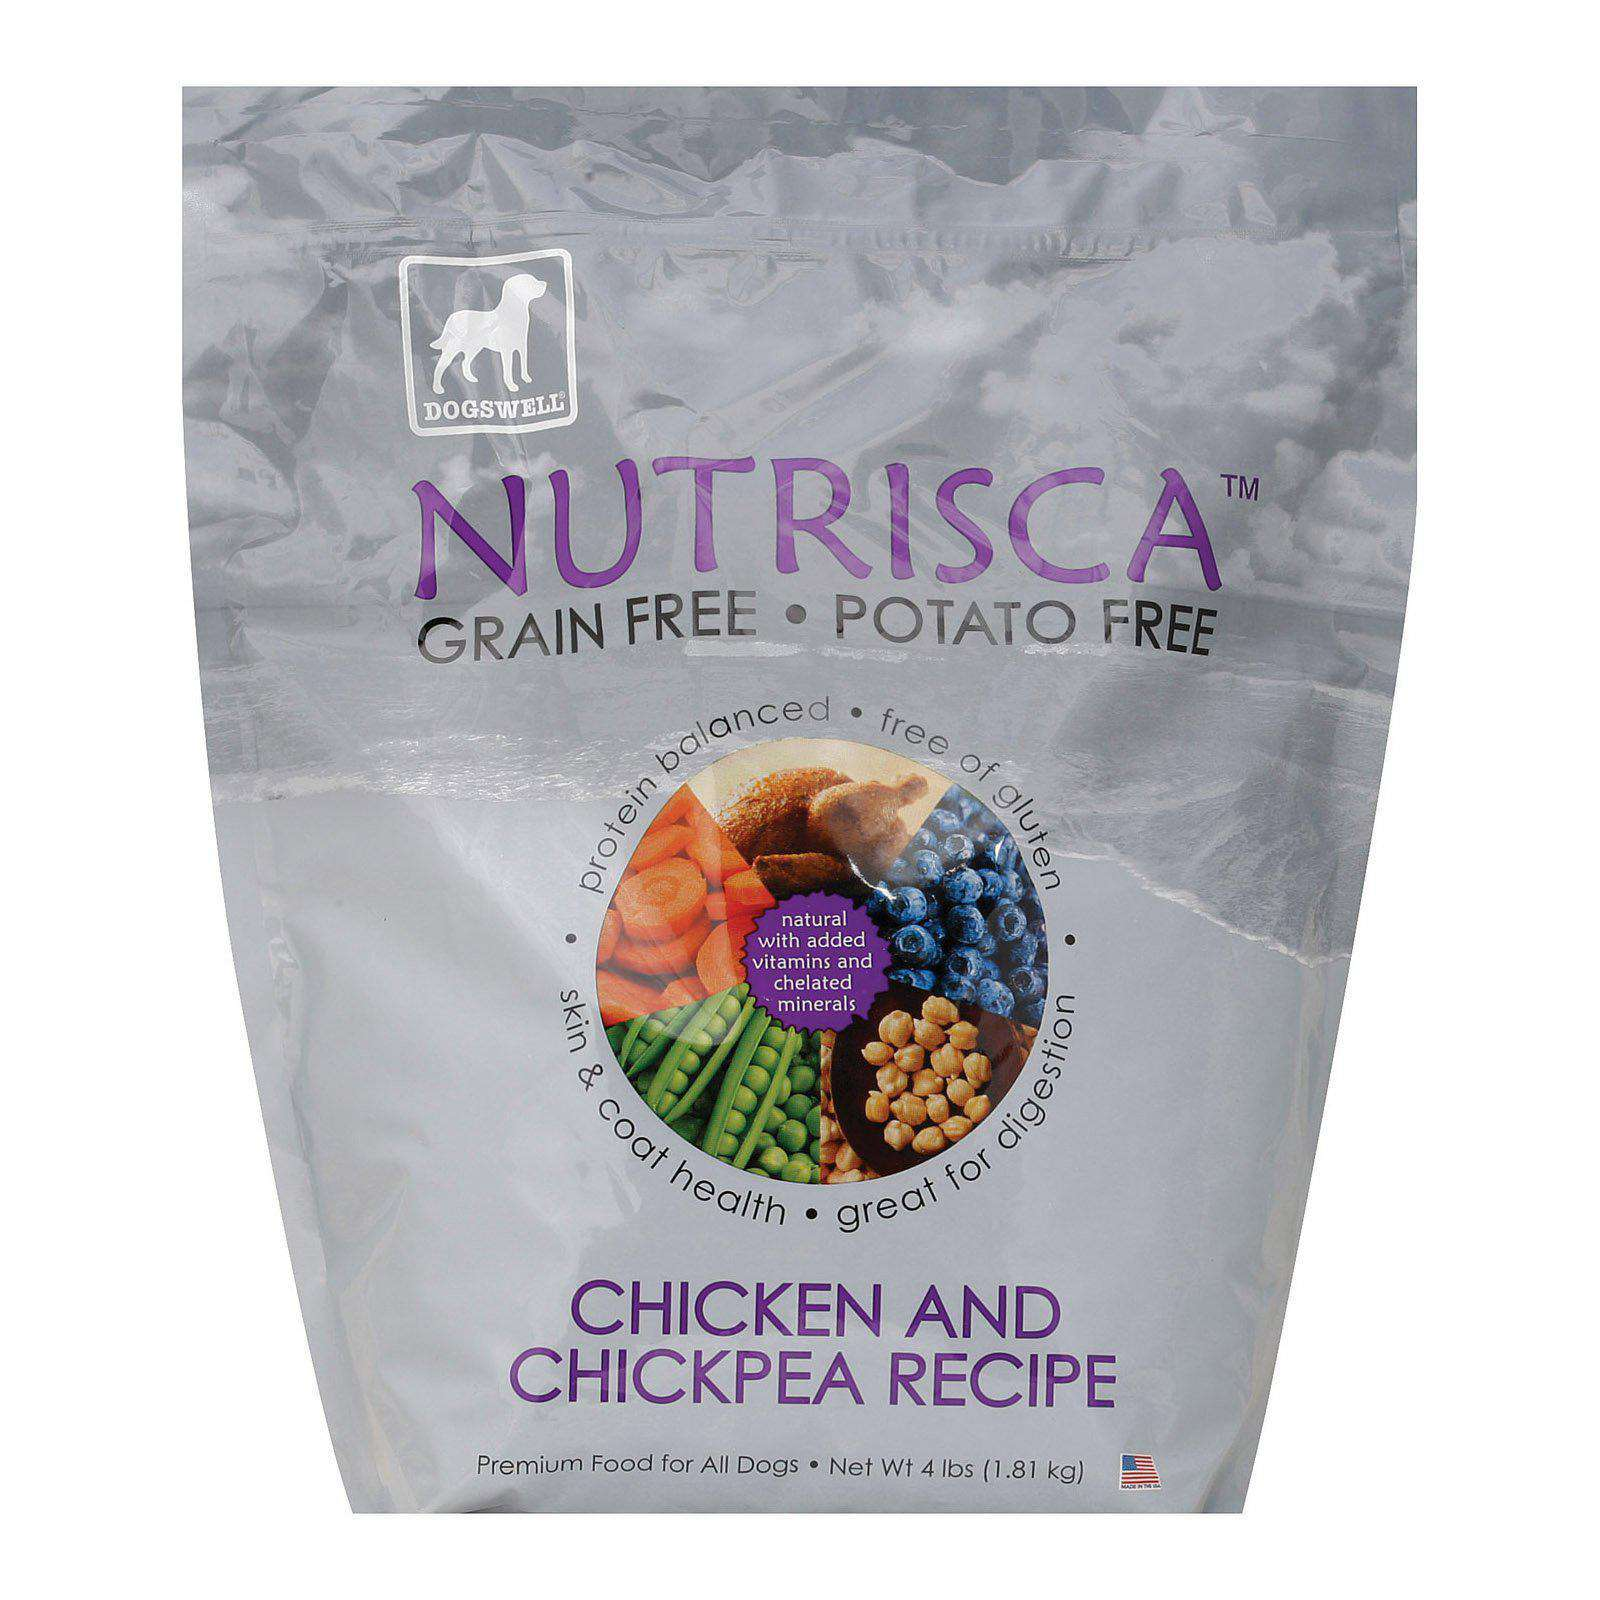 Dogs Well Nutrisca Chicken And Chickpea Dog Food - Case Of 6 - 4 Lb.-Dogswell-DirtyFurClothing